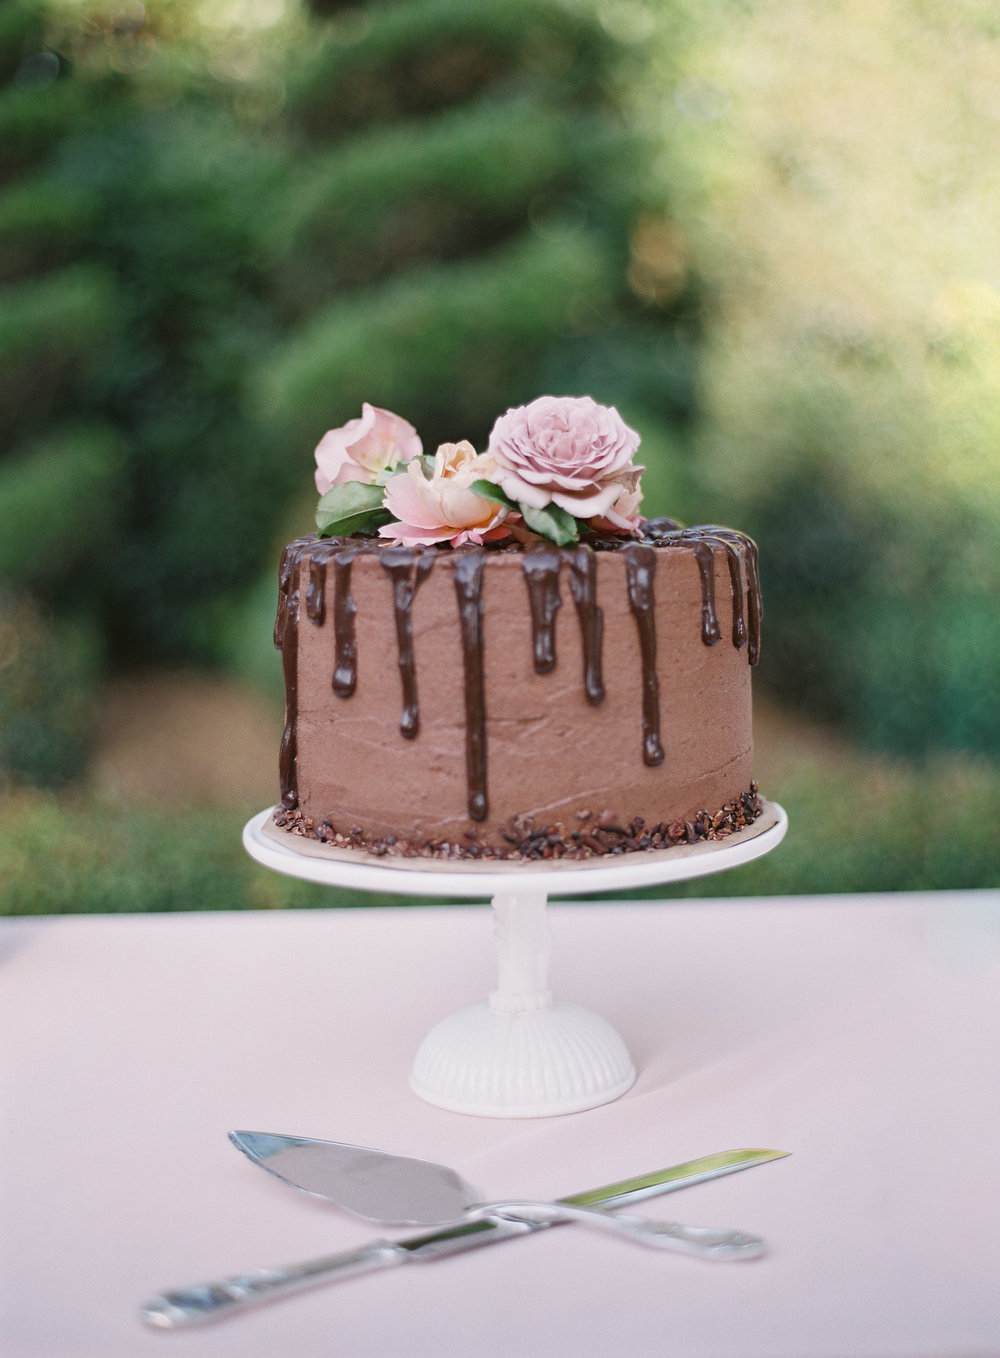 chocolate cutting cake with fresh flowers